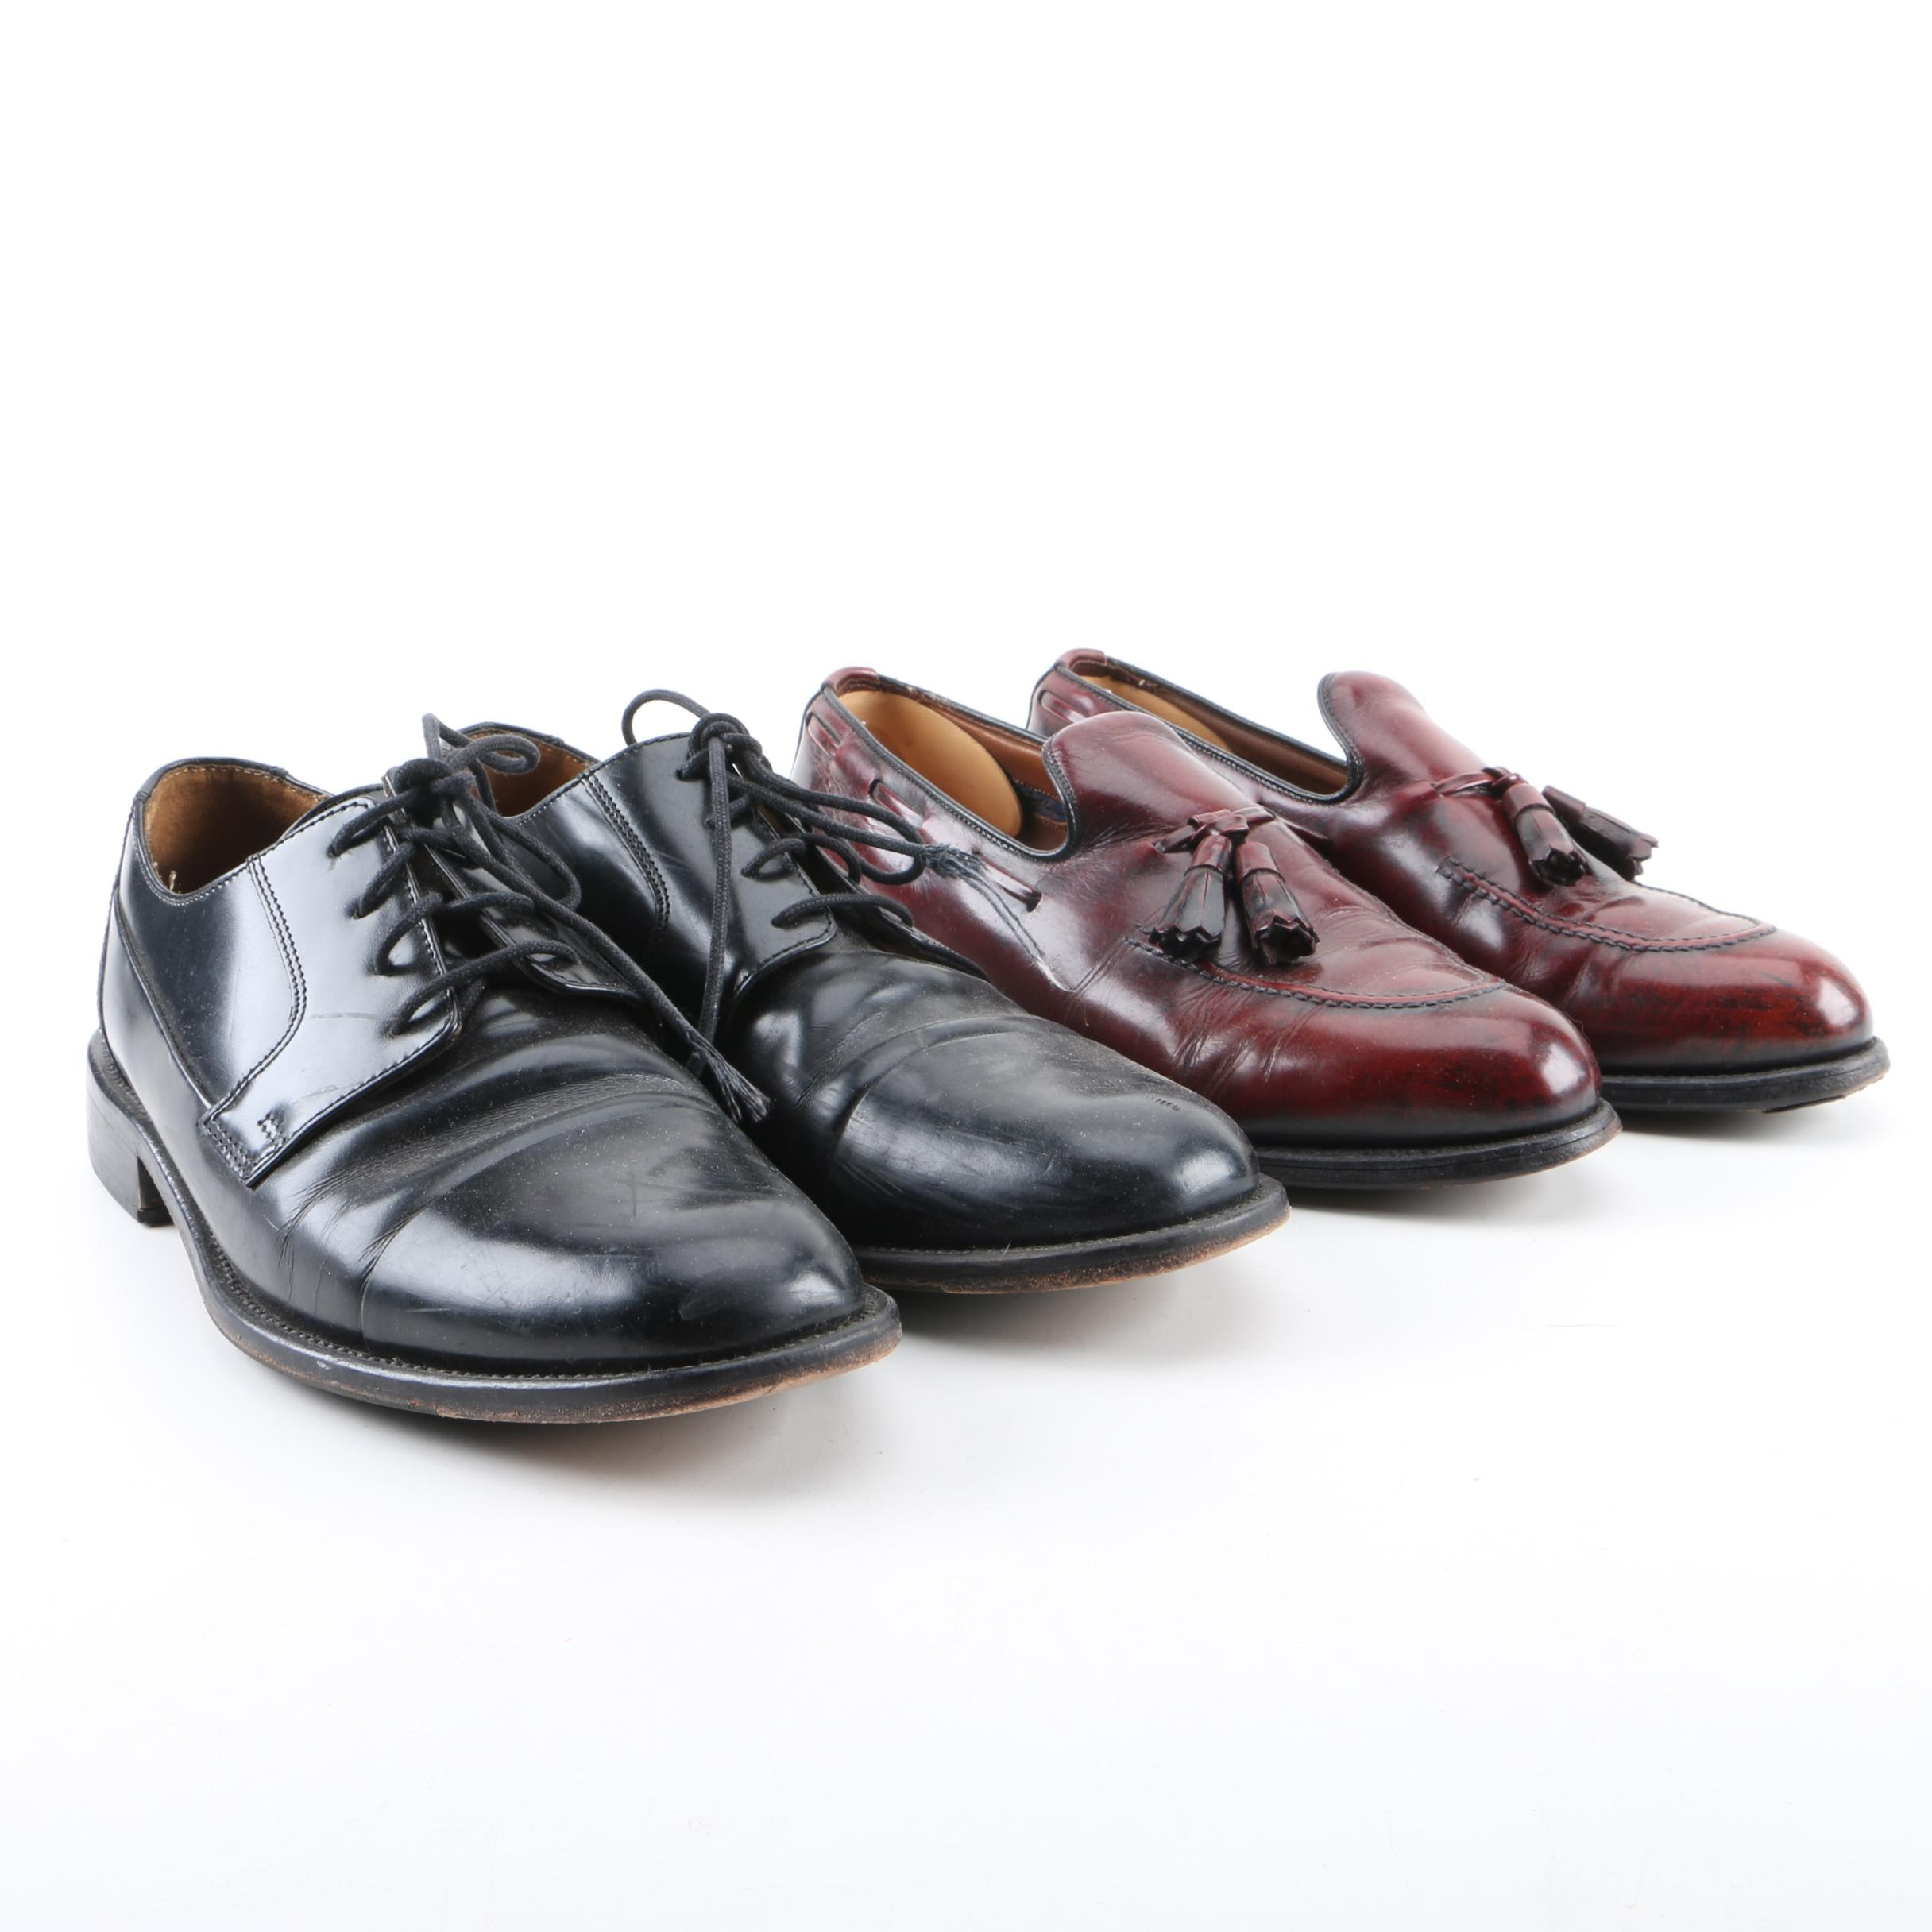 Men's Bostonian Black Leather Oxfords and Allen-Edmonds Brown Leather Loafers